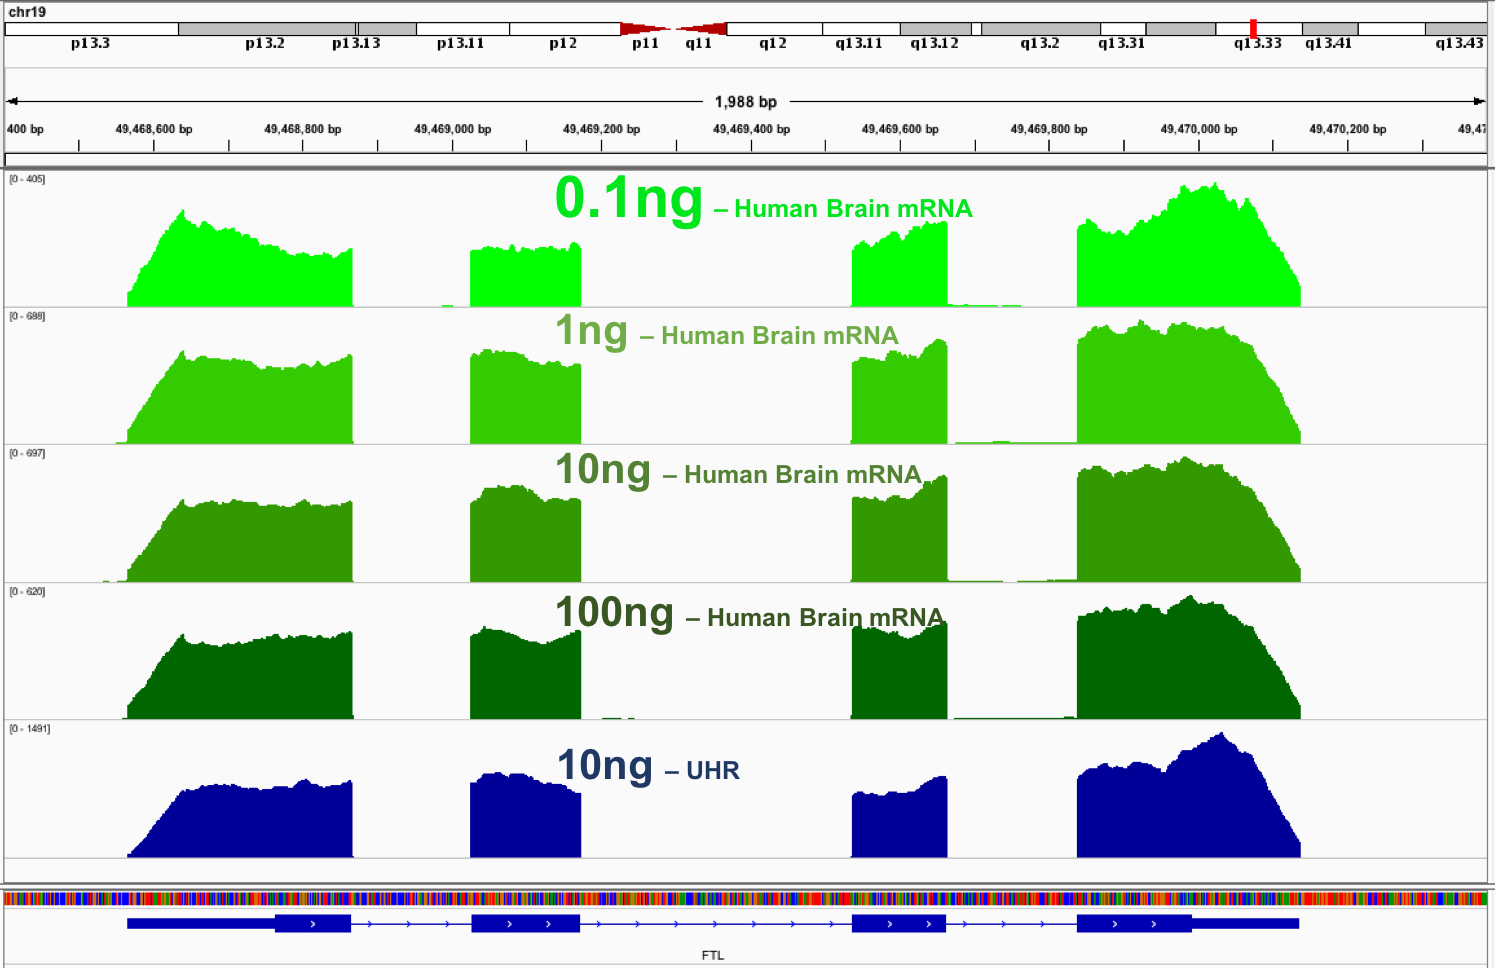 Uniform coverage obtained with a broad range of RNA concentrations. The traces represent coverage of the  FTL transcript; rich in GC content . The transcript is difficult to cover using popular commercial kits. Each green trace represents a different amount of sample inputs, from the top 0.1ng, 1ng, 10ng and 100ng of Human Brain mRNA. The bottom trace (blue) was generated with 10ng of UHR RNA, which was Ribo-depleted.